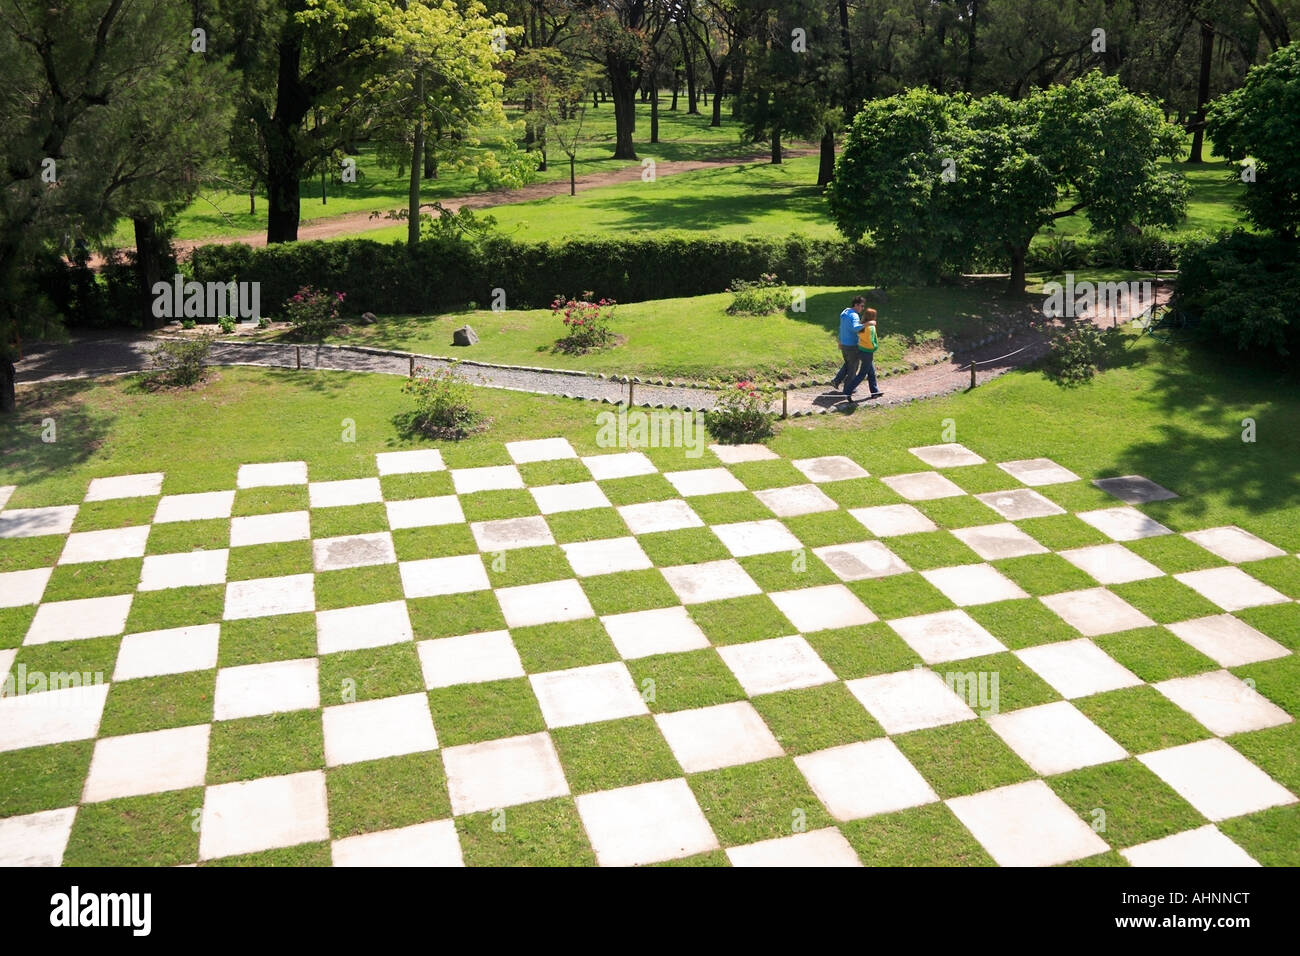 Far View Of Japanesse Garden Chess Floor Park, With Trees And Path.  Palermo, Buenos Aires, Argentina